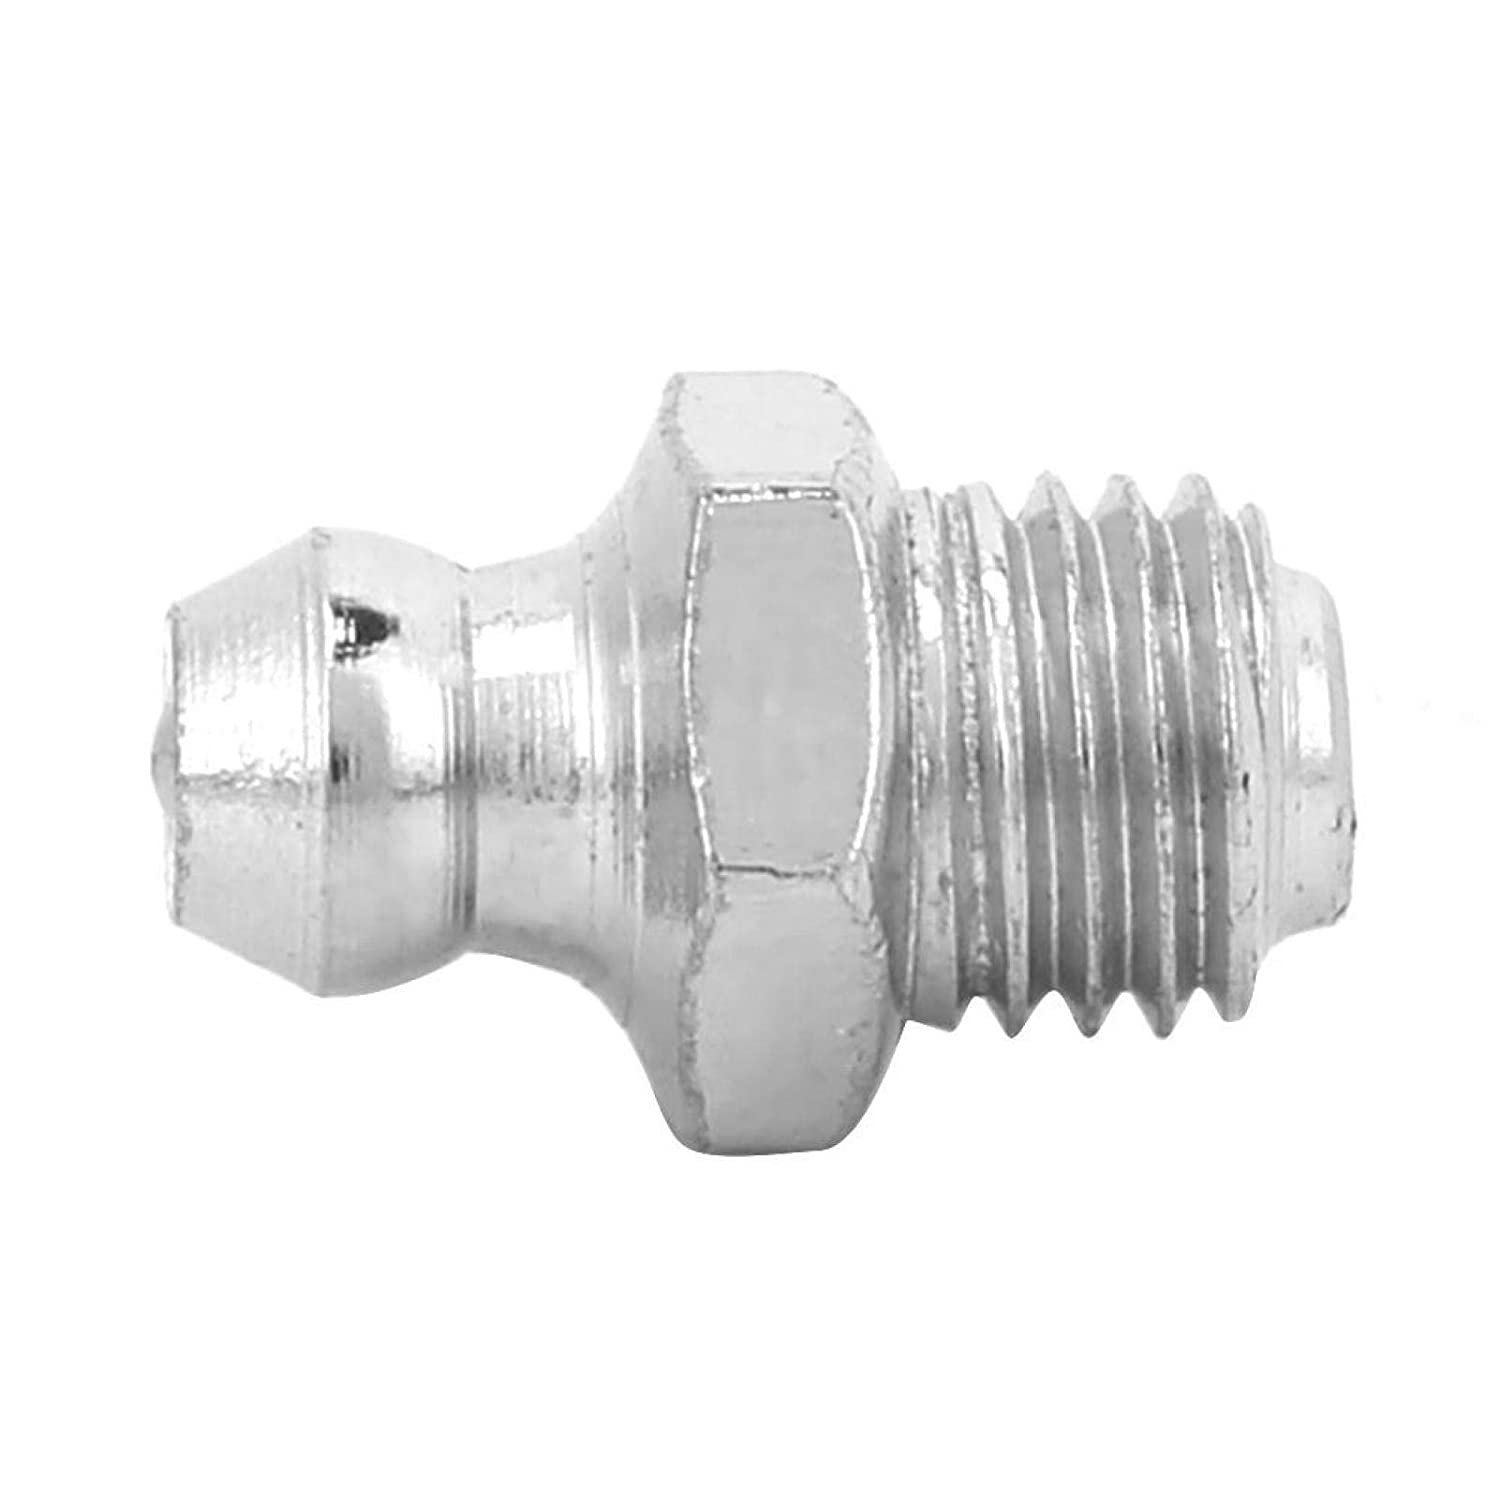 Grease Nozzle 10PCS Popular brand in the world Gun Dealing full price reduction Straight 45° 90°